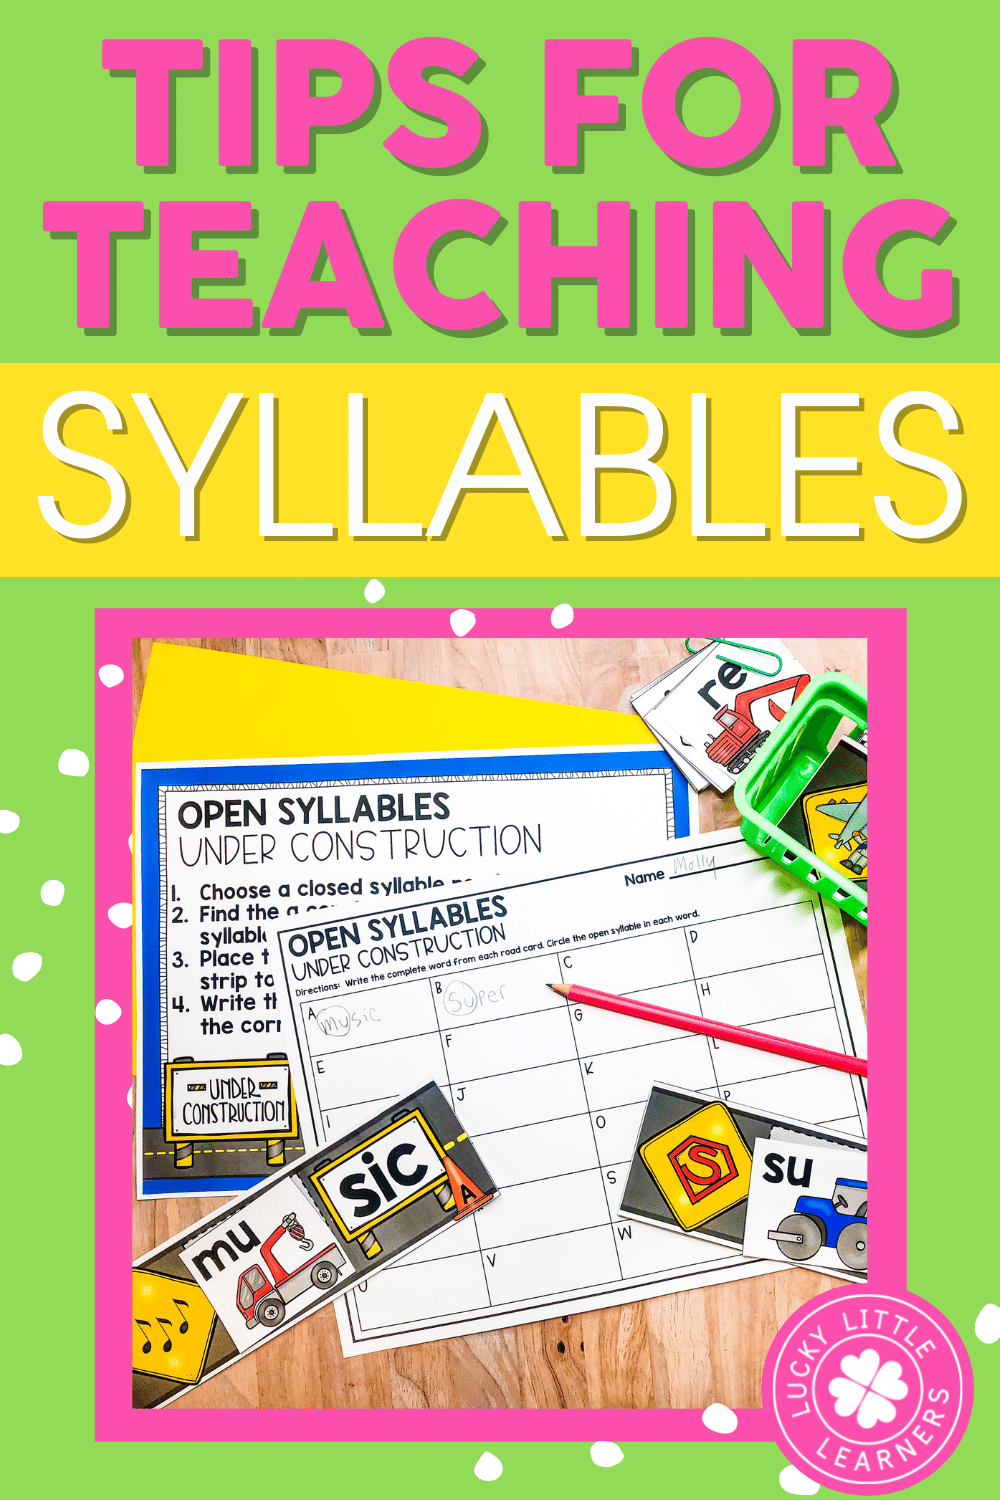 tips for teaching syllables to children in the primary grades